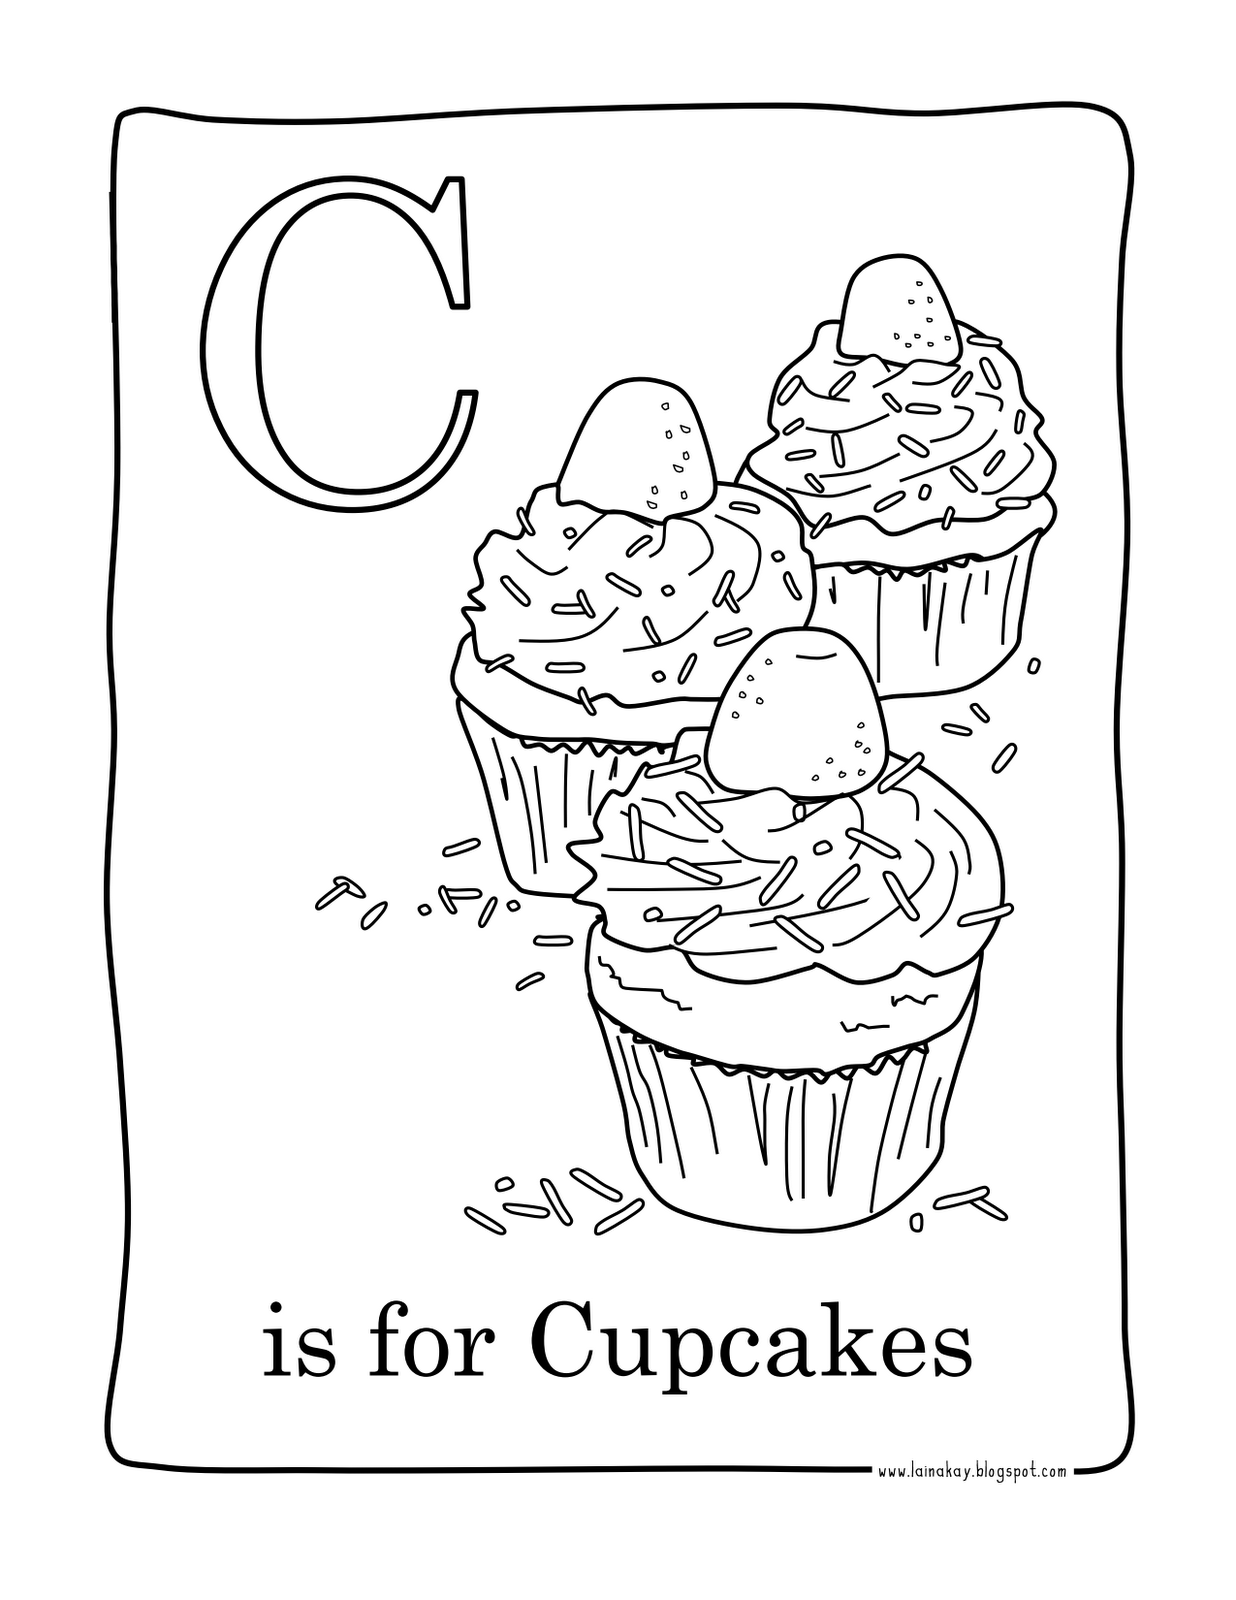 Colouring Pages For Cupcakes : Free Coloring Pages: Cupcake Coloring Pages